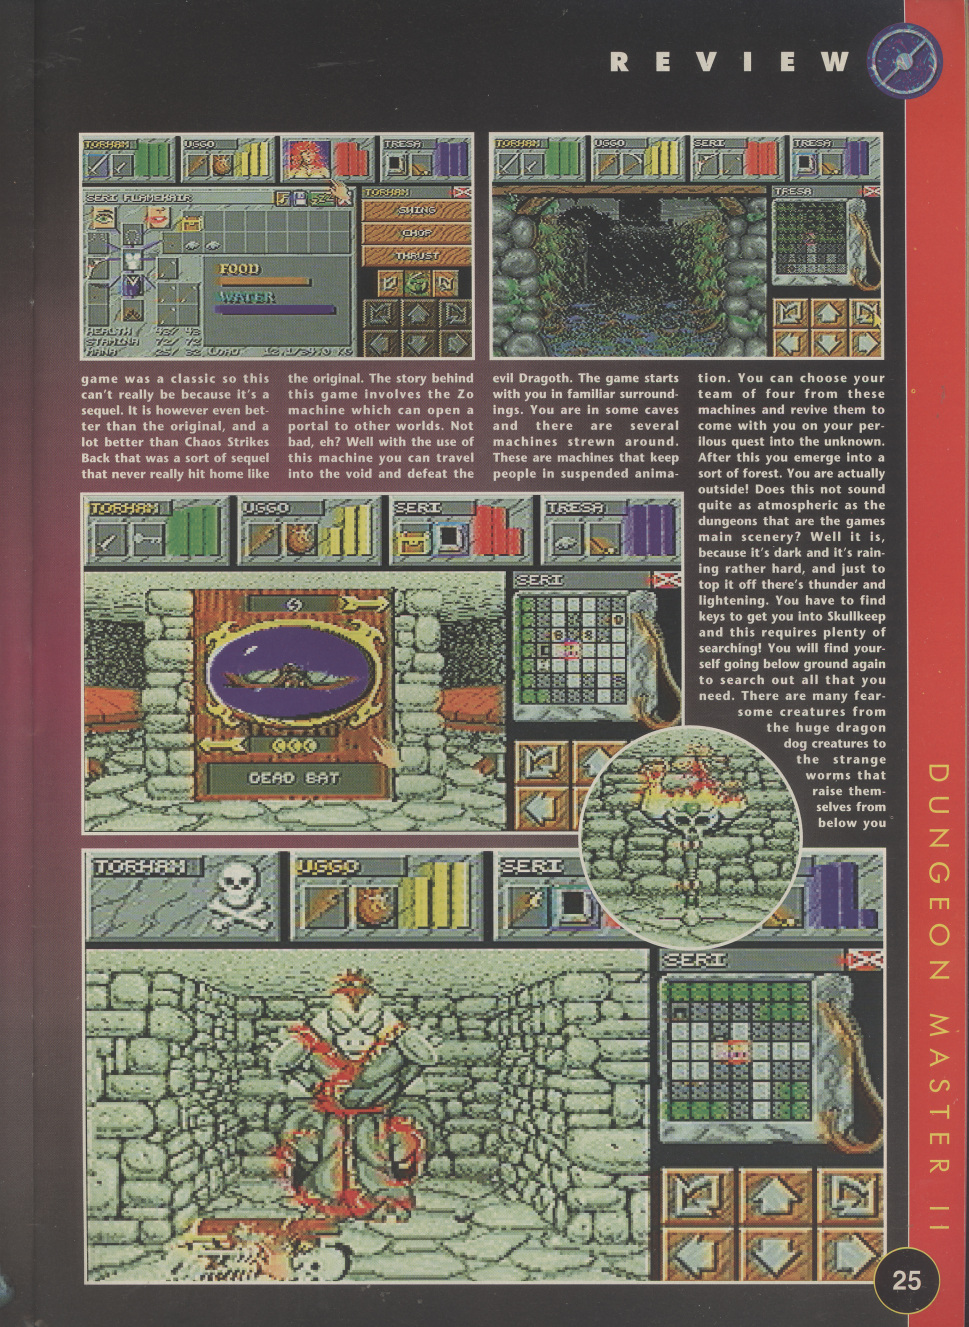 Dungeon Master II for Amiga Review published in British magazine 'The One Amiga', Issue #85 November 1995, Page 25